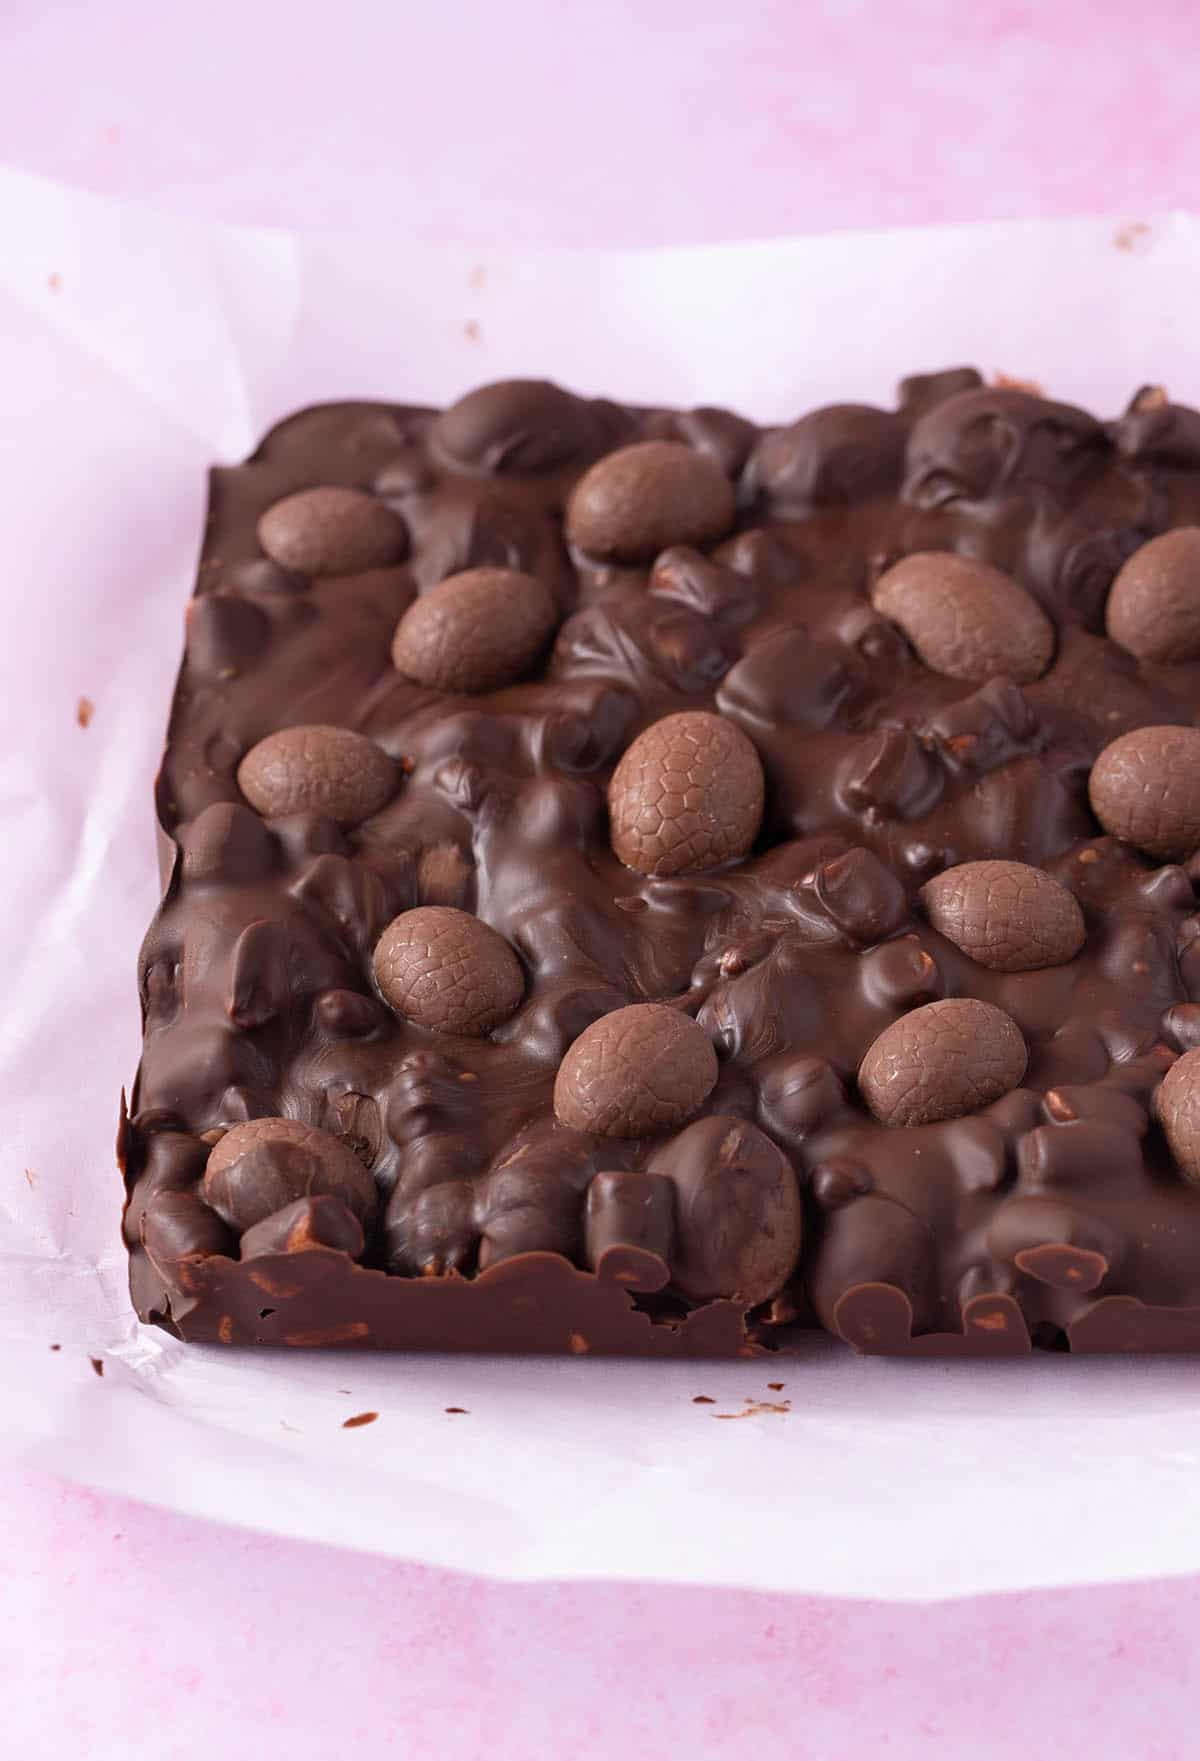 A slab of Easter Egg Rocky Road on a pink background.